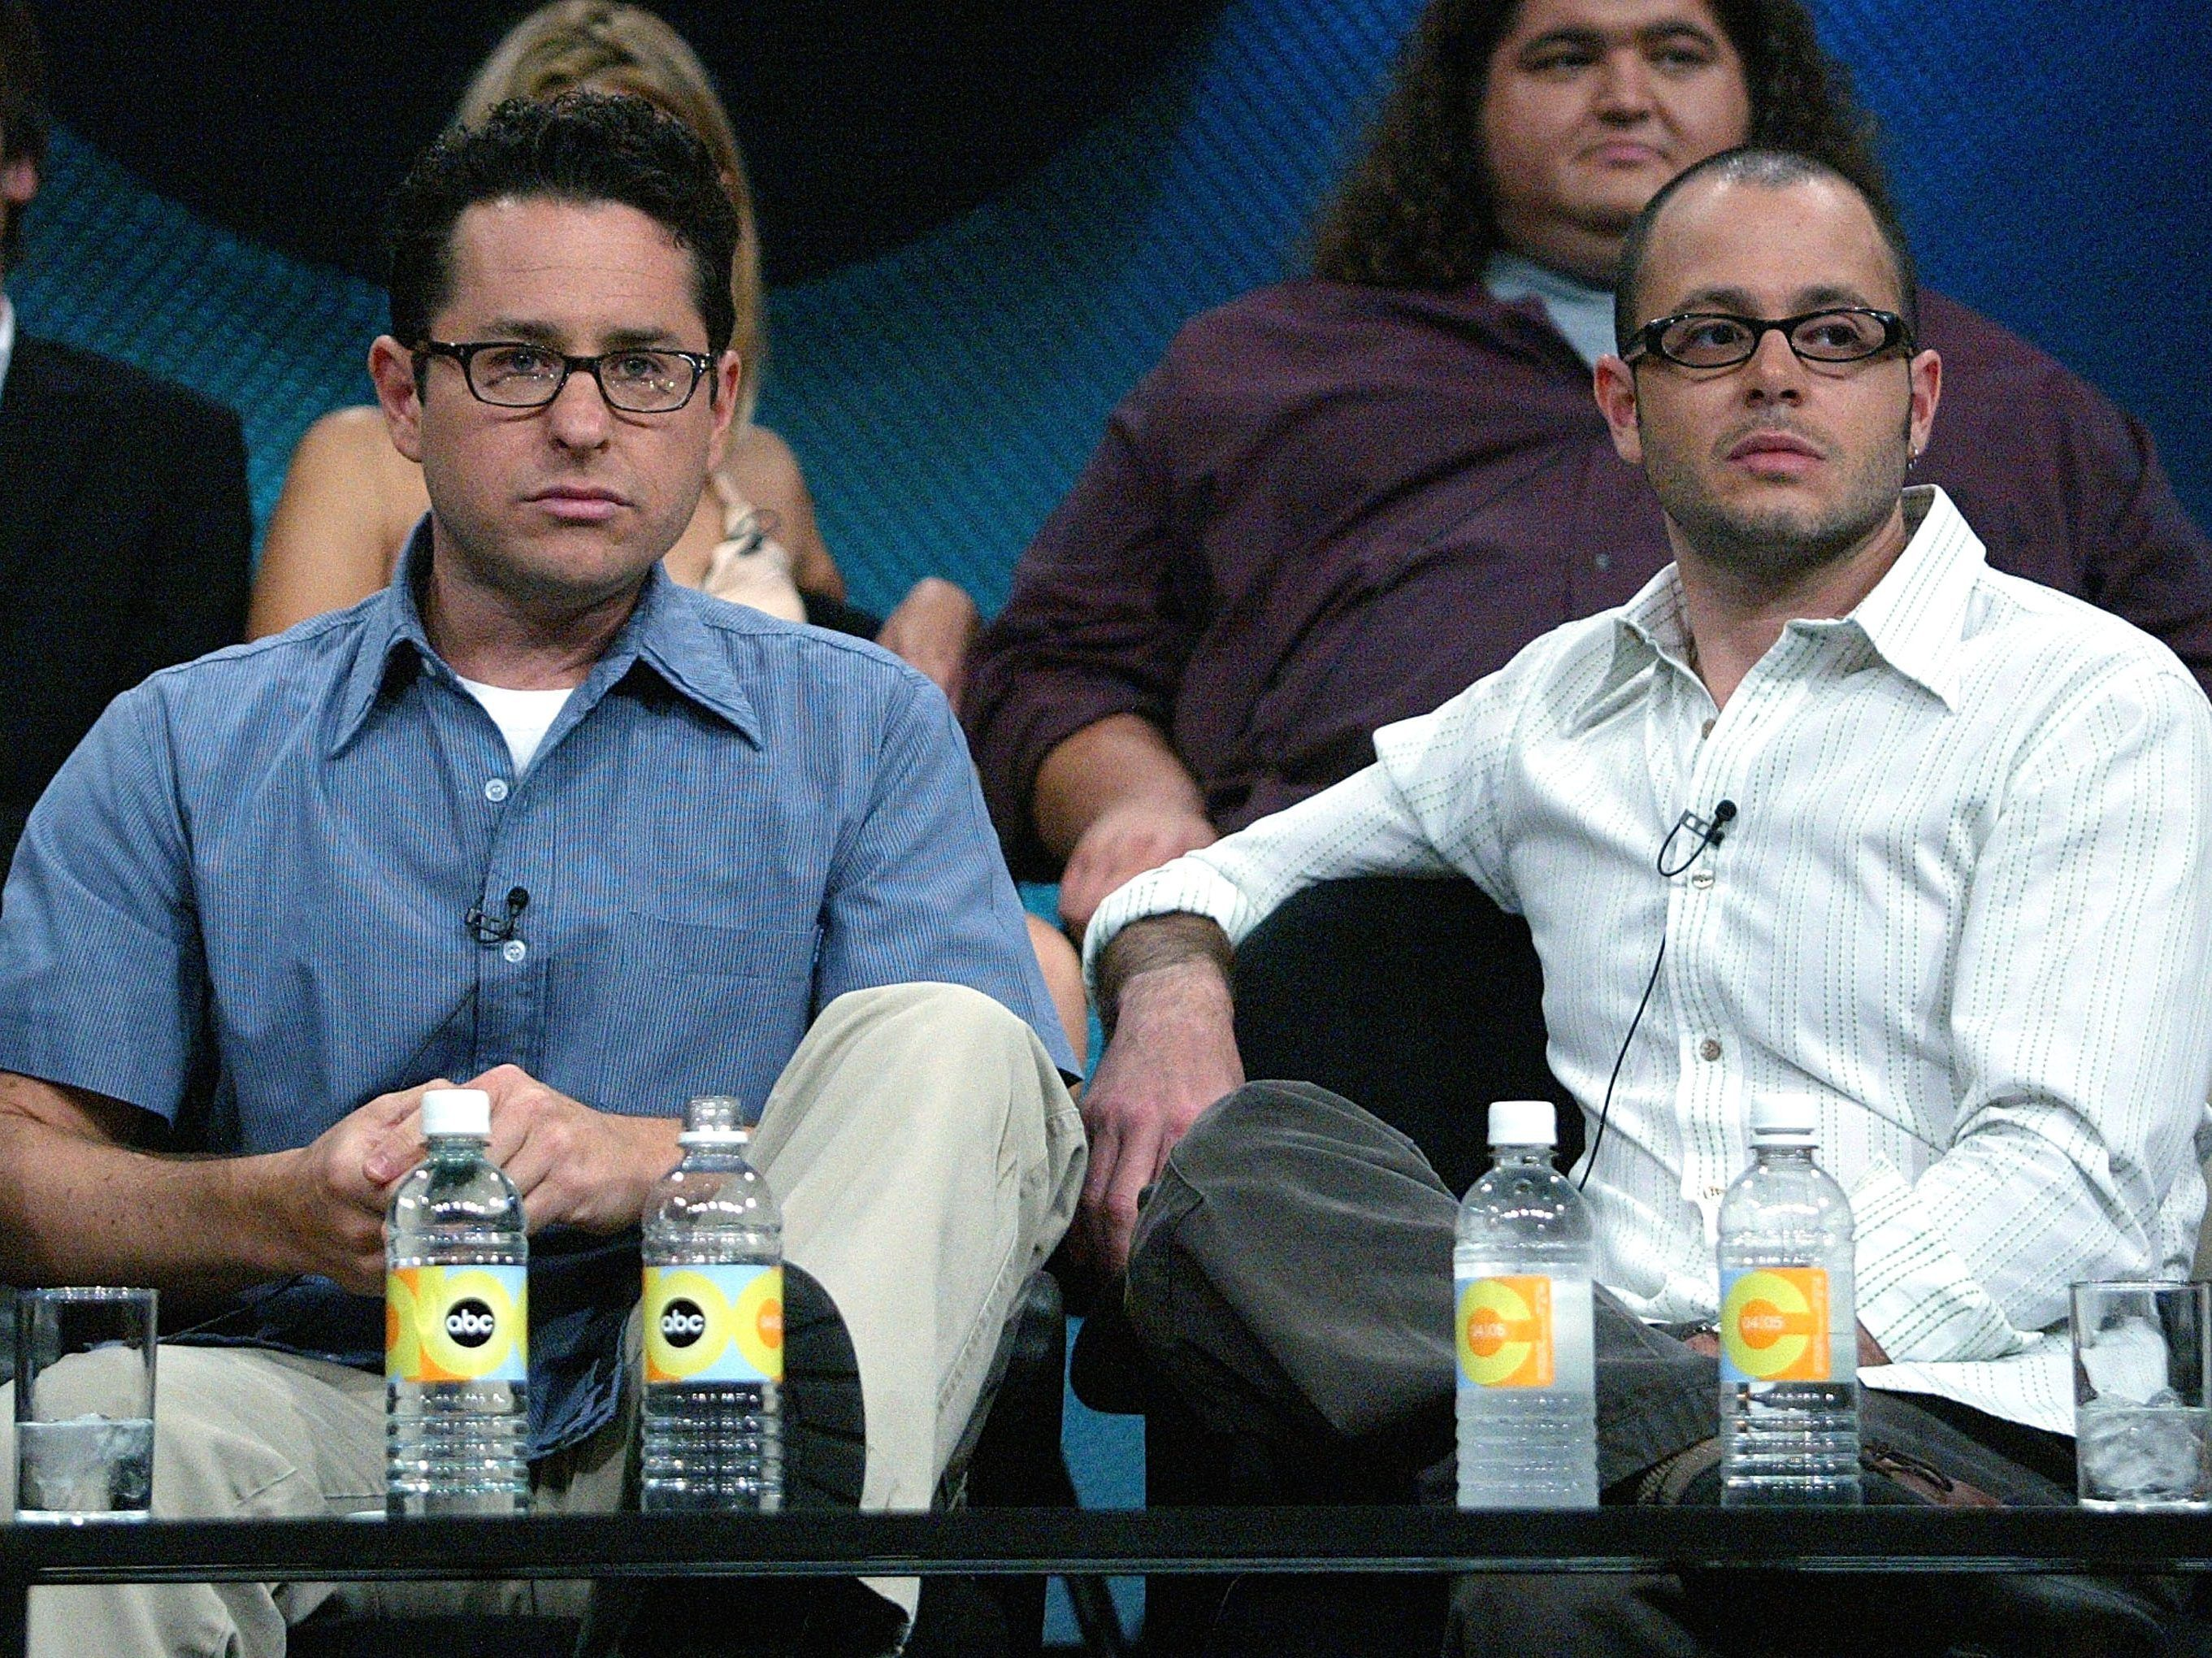 Lost creator J.J. Abrams apologizes to Evangeline Lilly